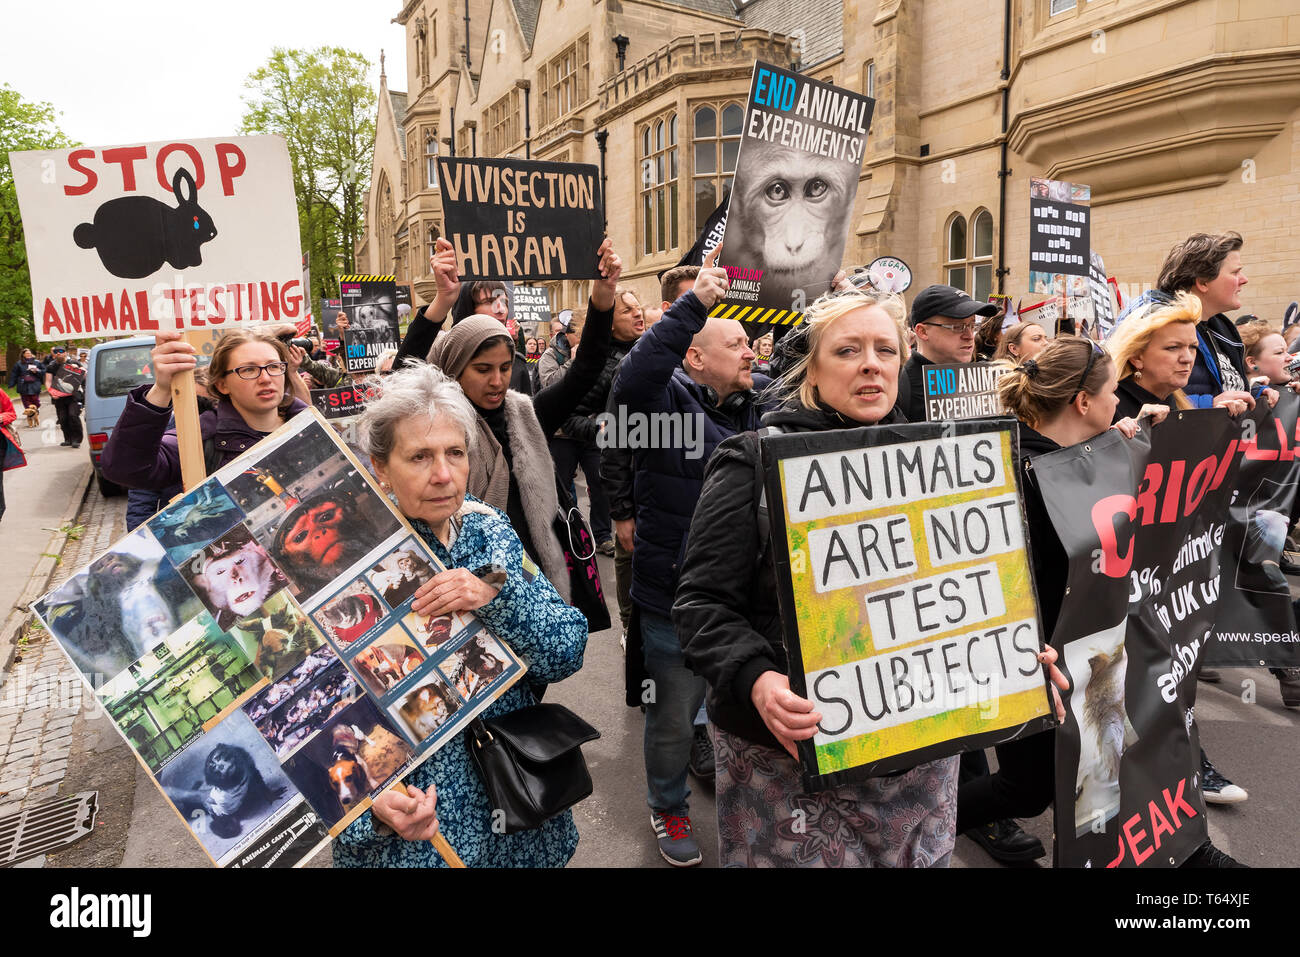 World Day for Animals in Laboratories, Oxford. Activists against animal experiments march through the city centre to highlight their campaign. Stock Photo